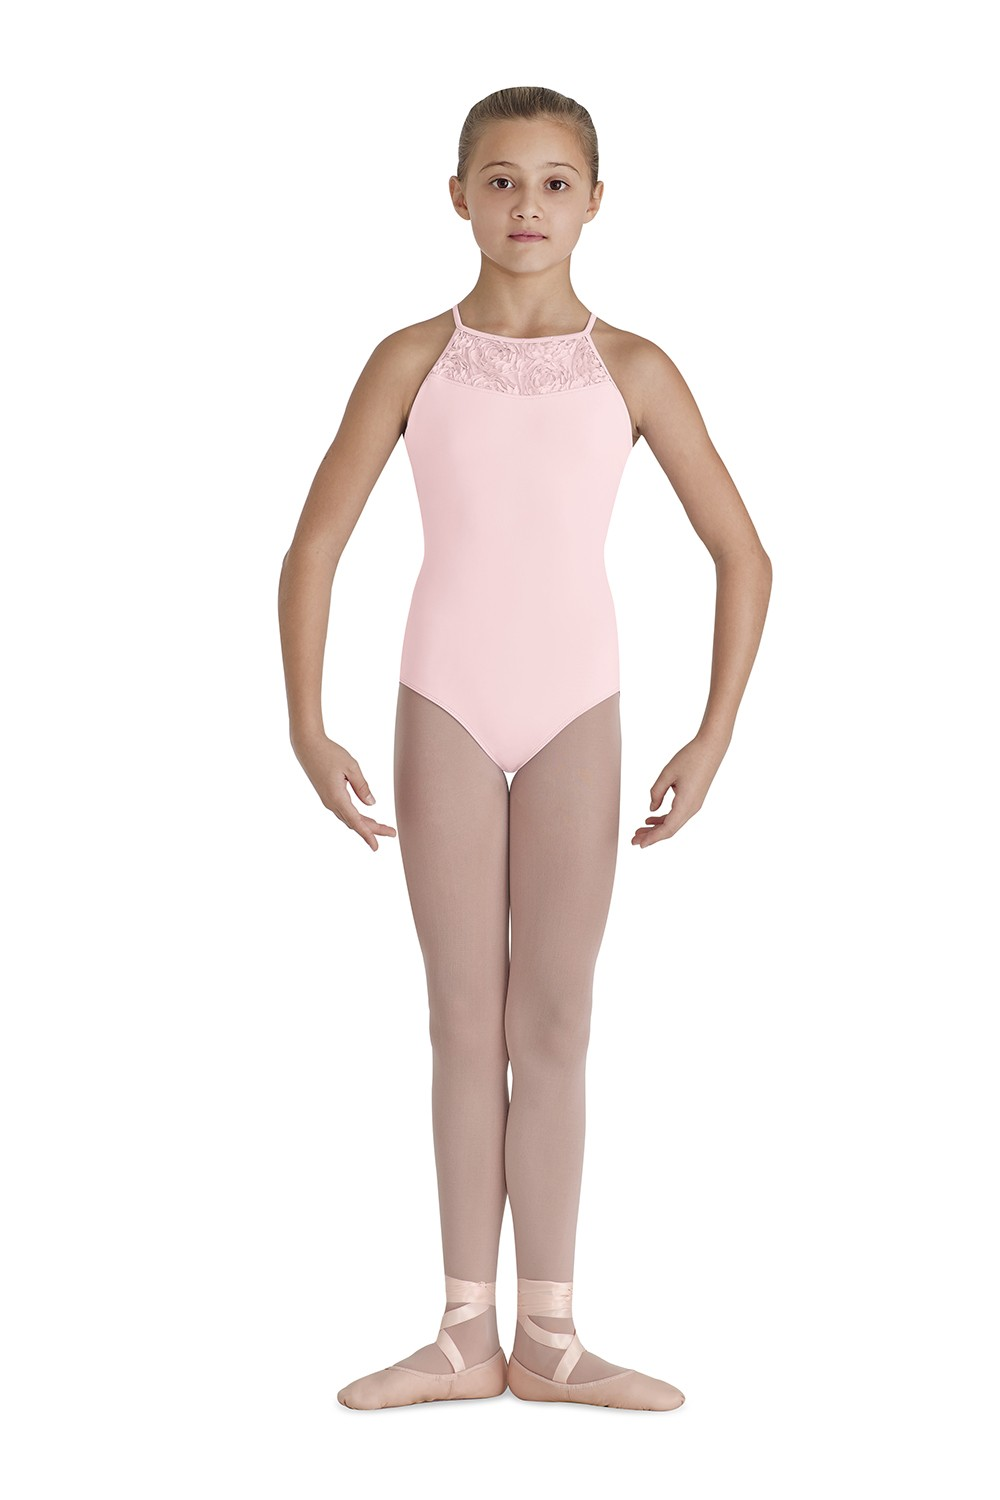 Tehila Children's Dance Leotards